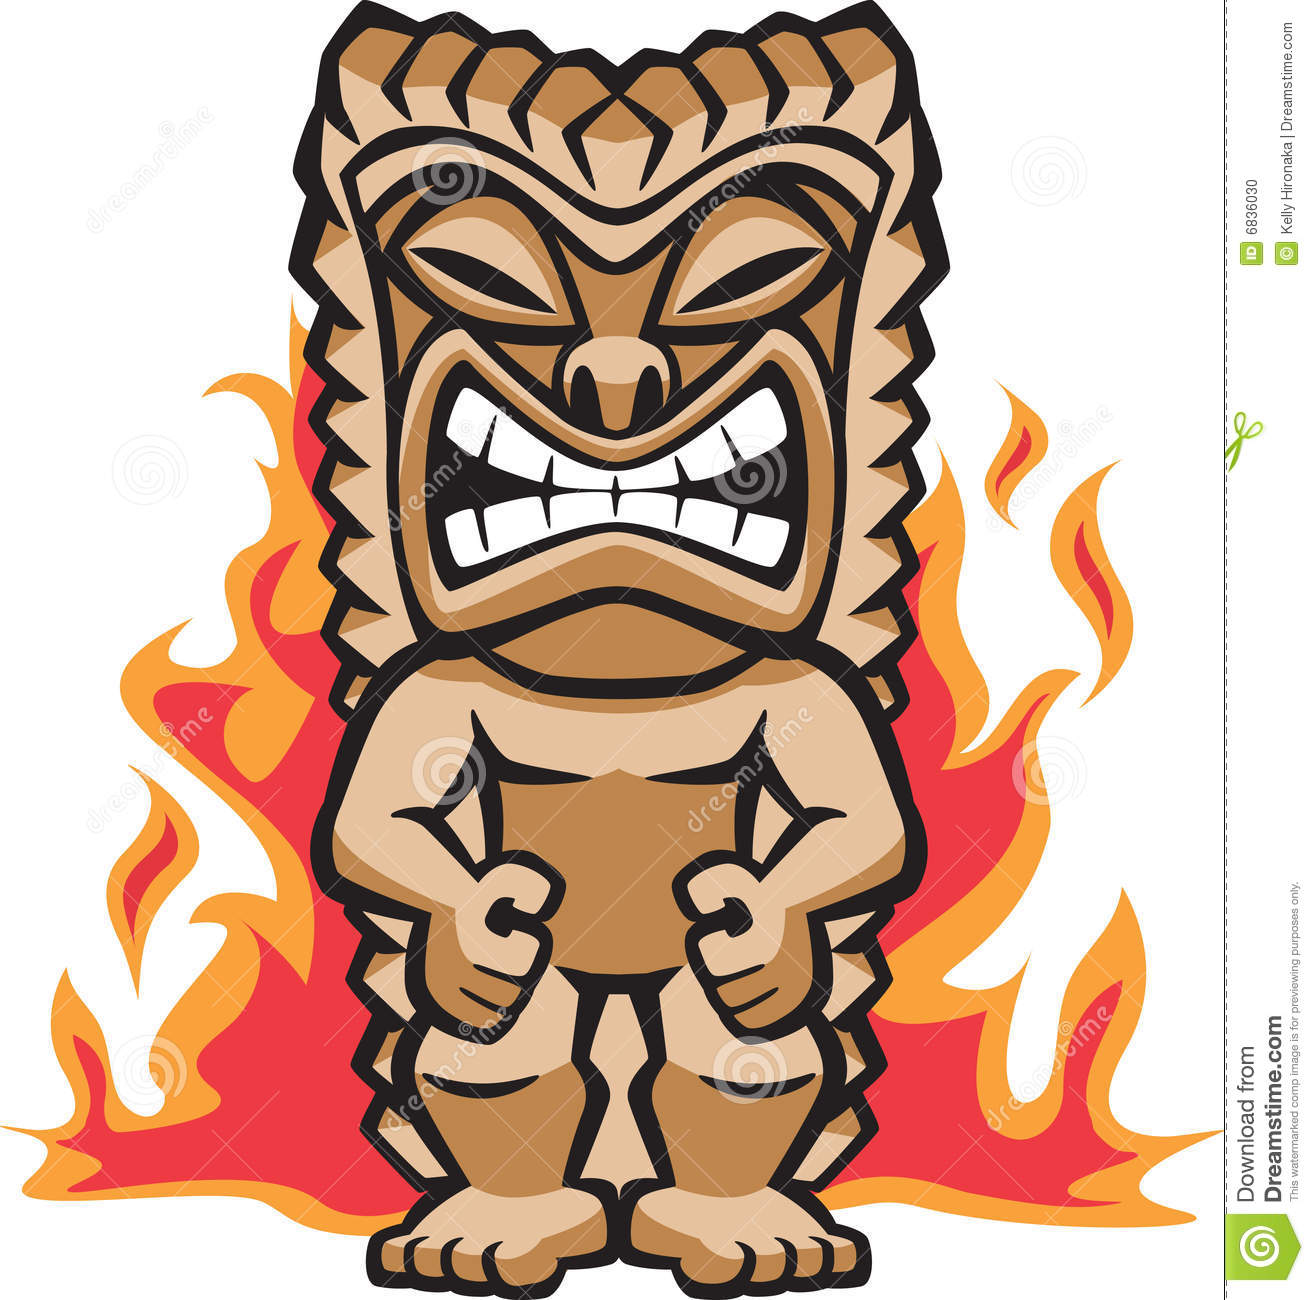 Illustration of a strong tiki warrior amongst burning flames.